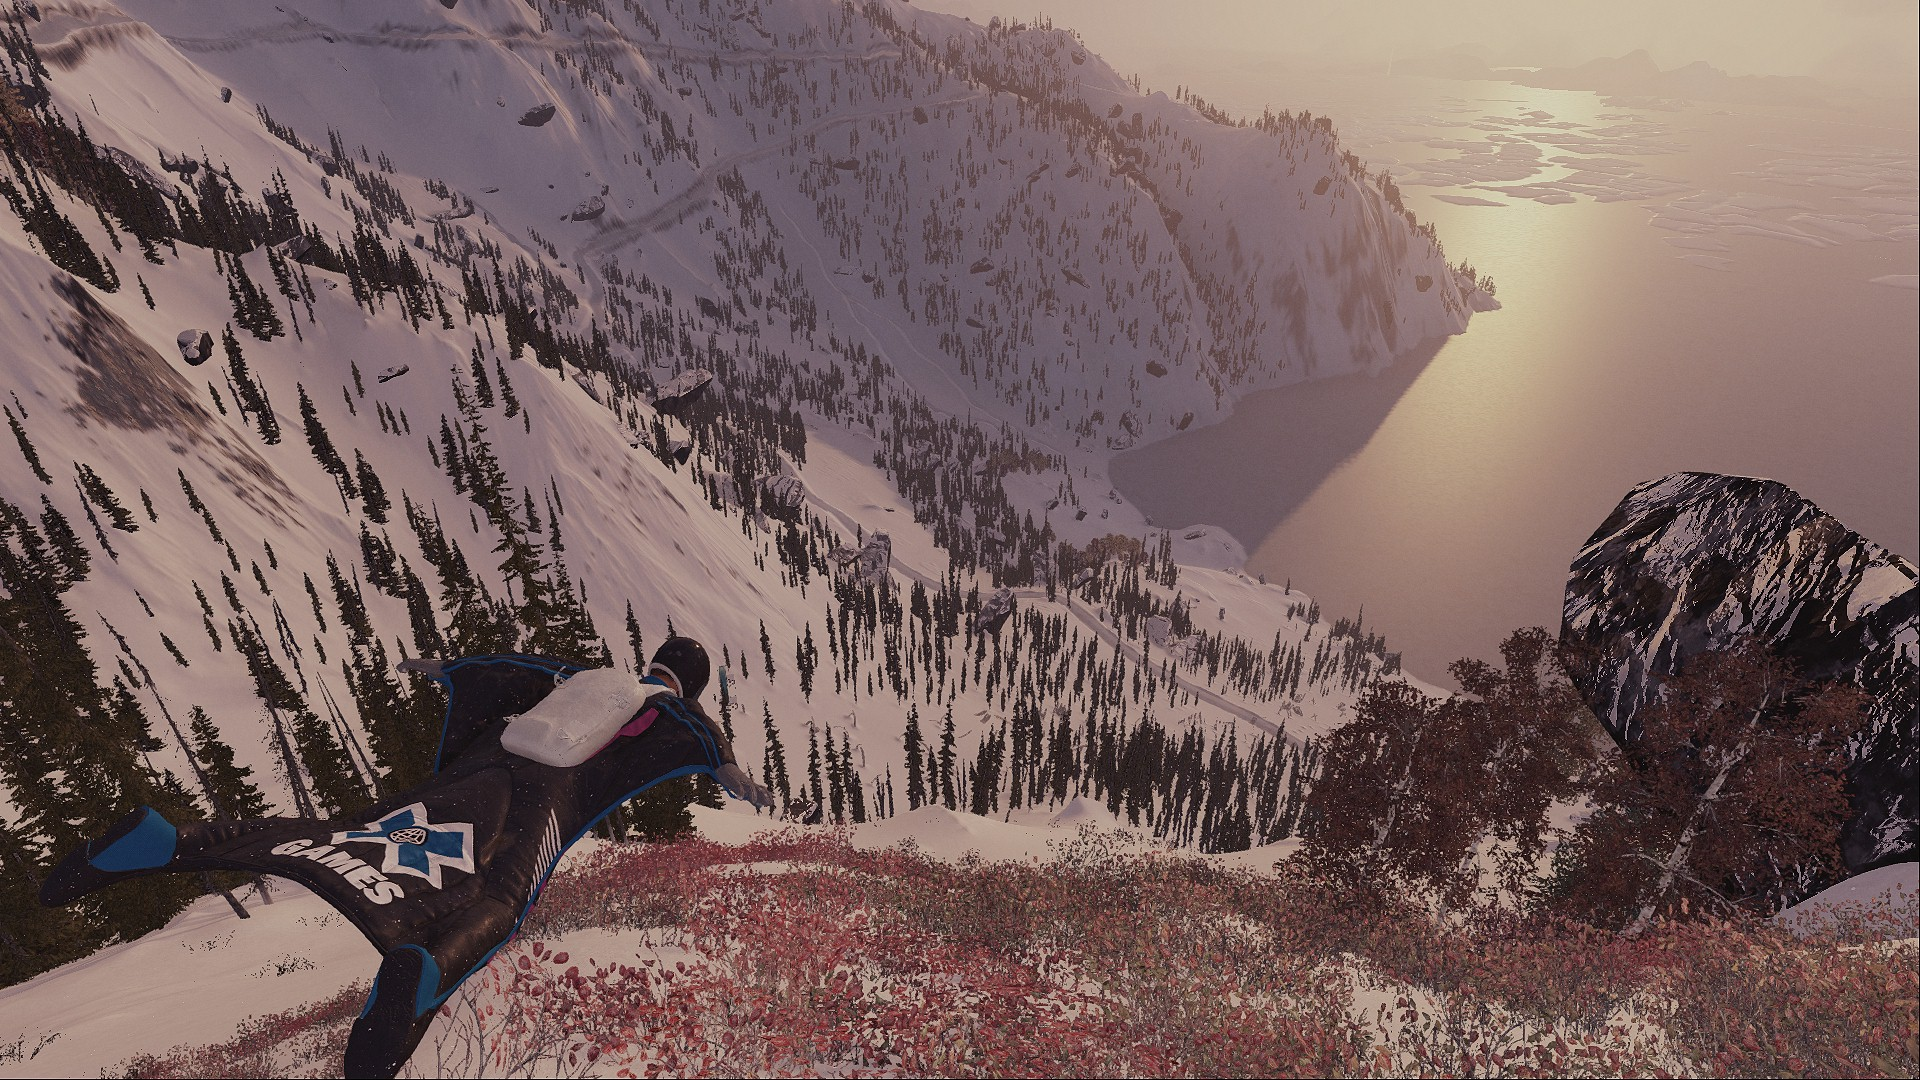 [2019-02-05] Wingsuit Challenges - Fly Like A Whale